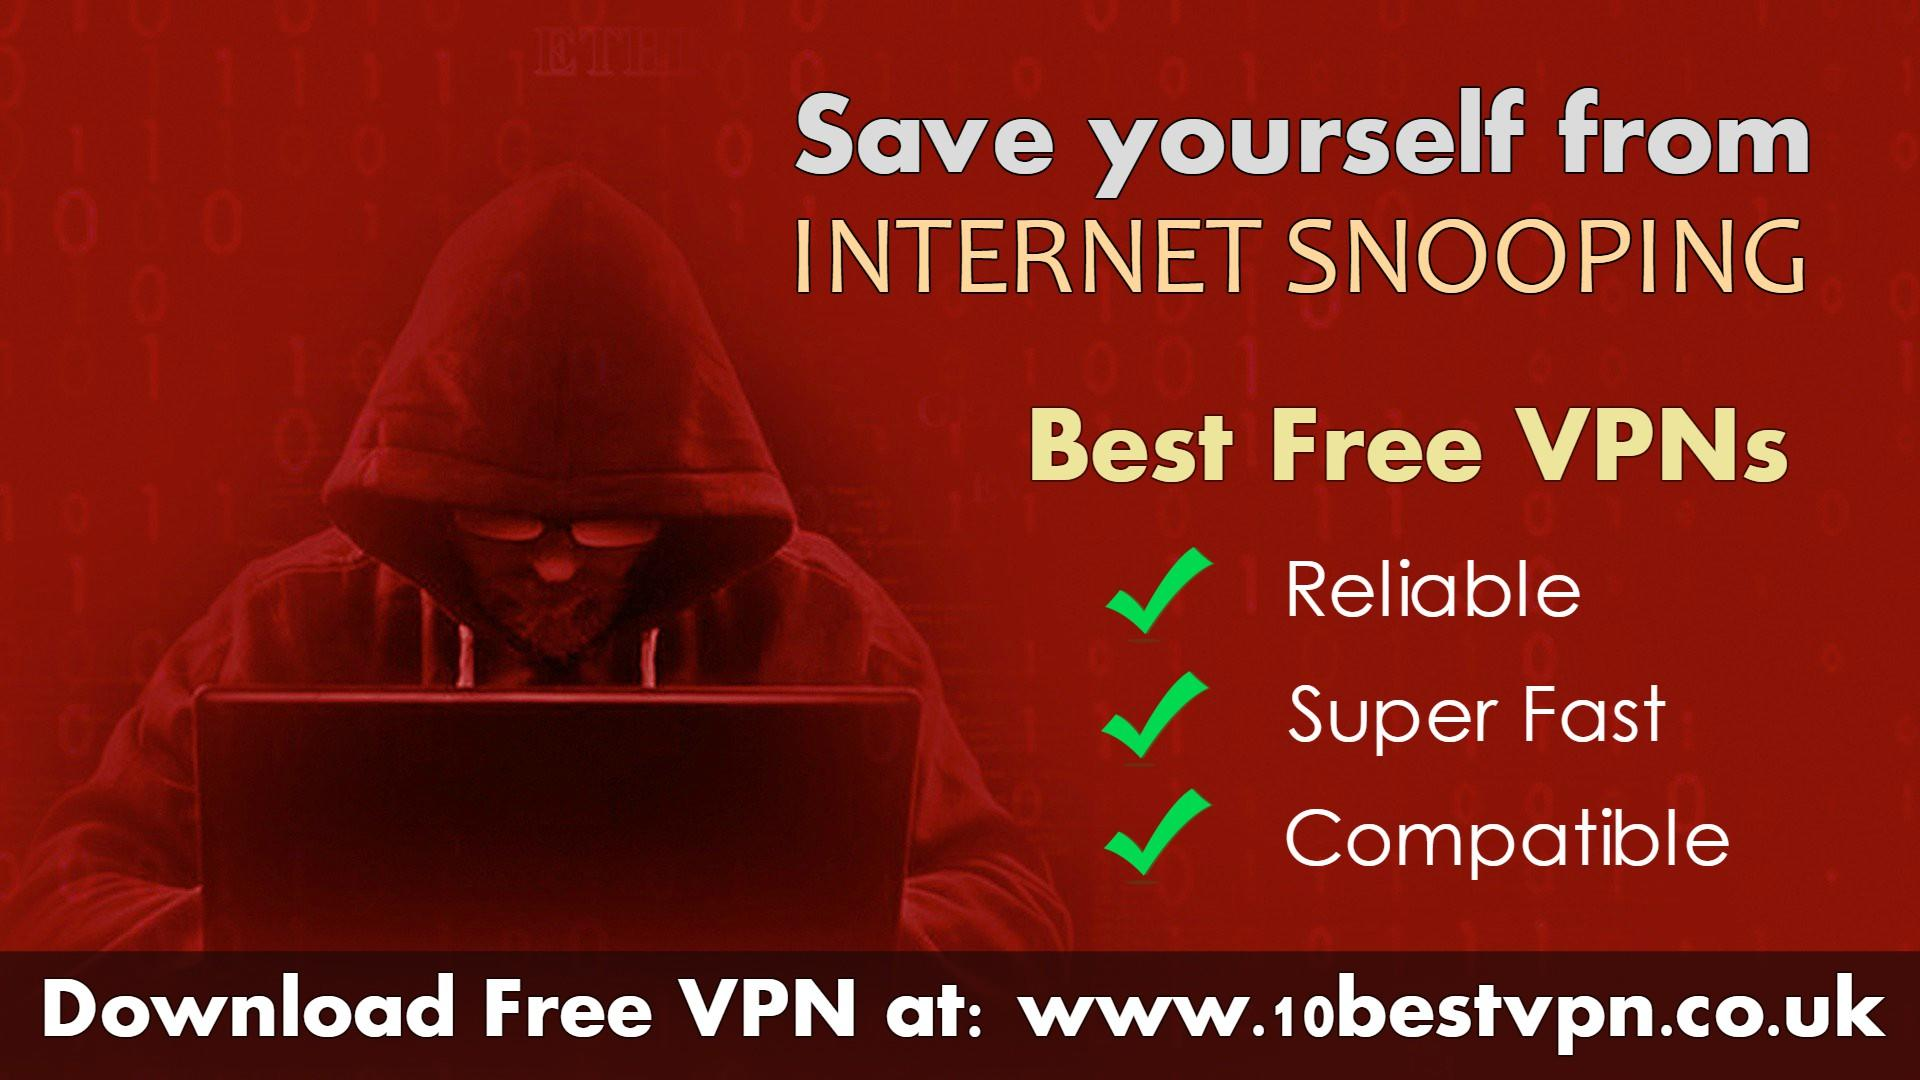 Image - Get the list of #BestFreeVPN that are totally reliable and secured. 10BestVPN have a list of #BestFreeVPNs th...